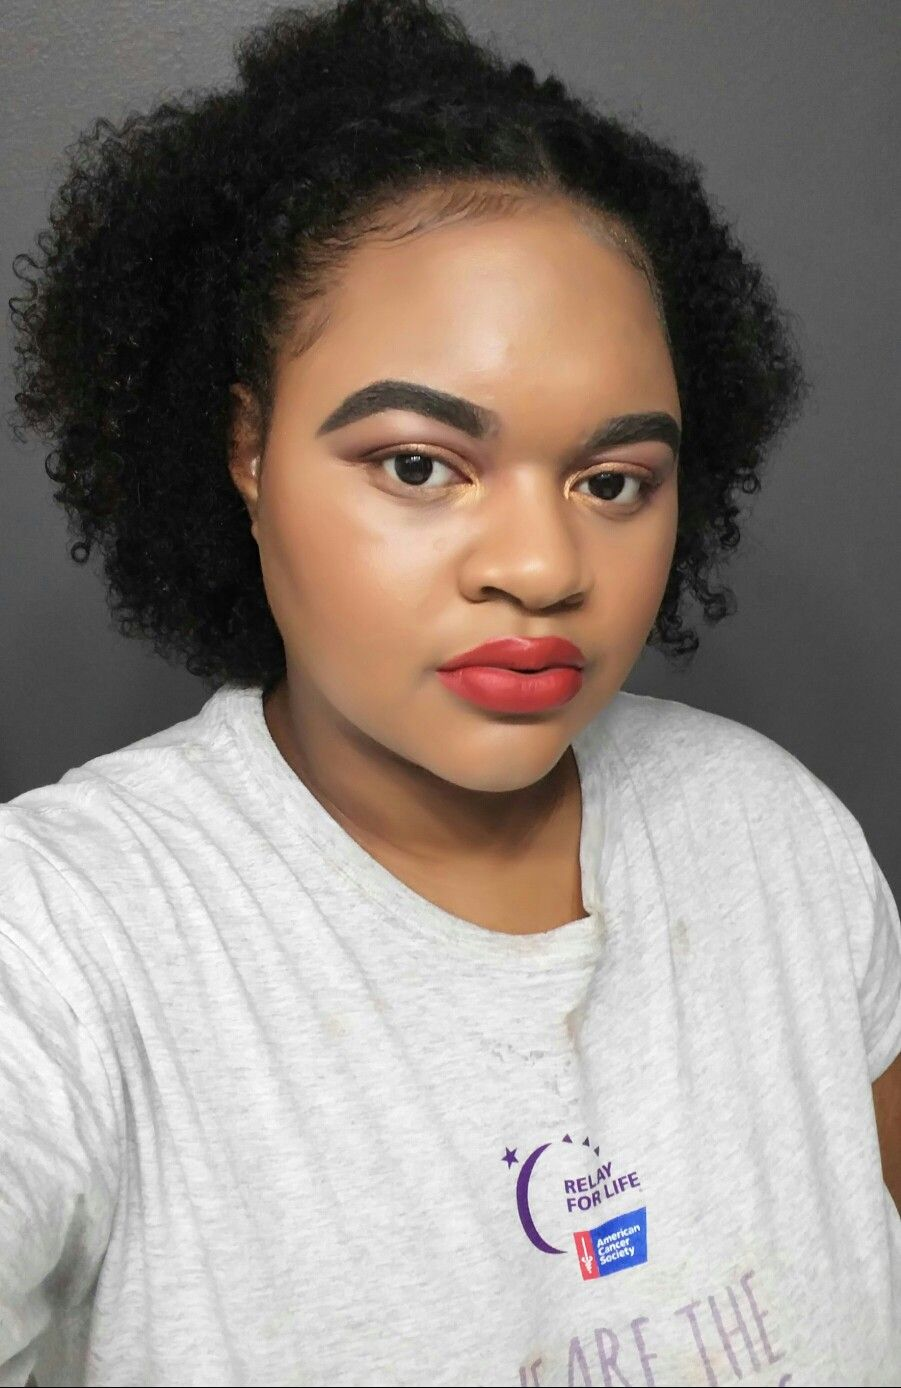 Simple makeup with bold red lips 😍